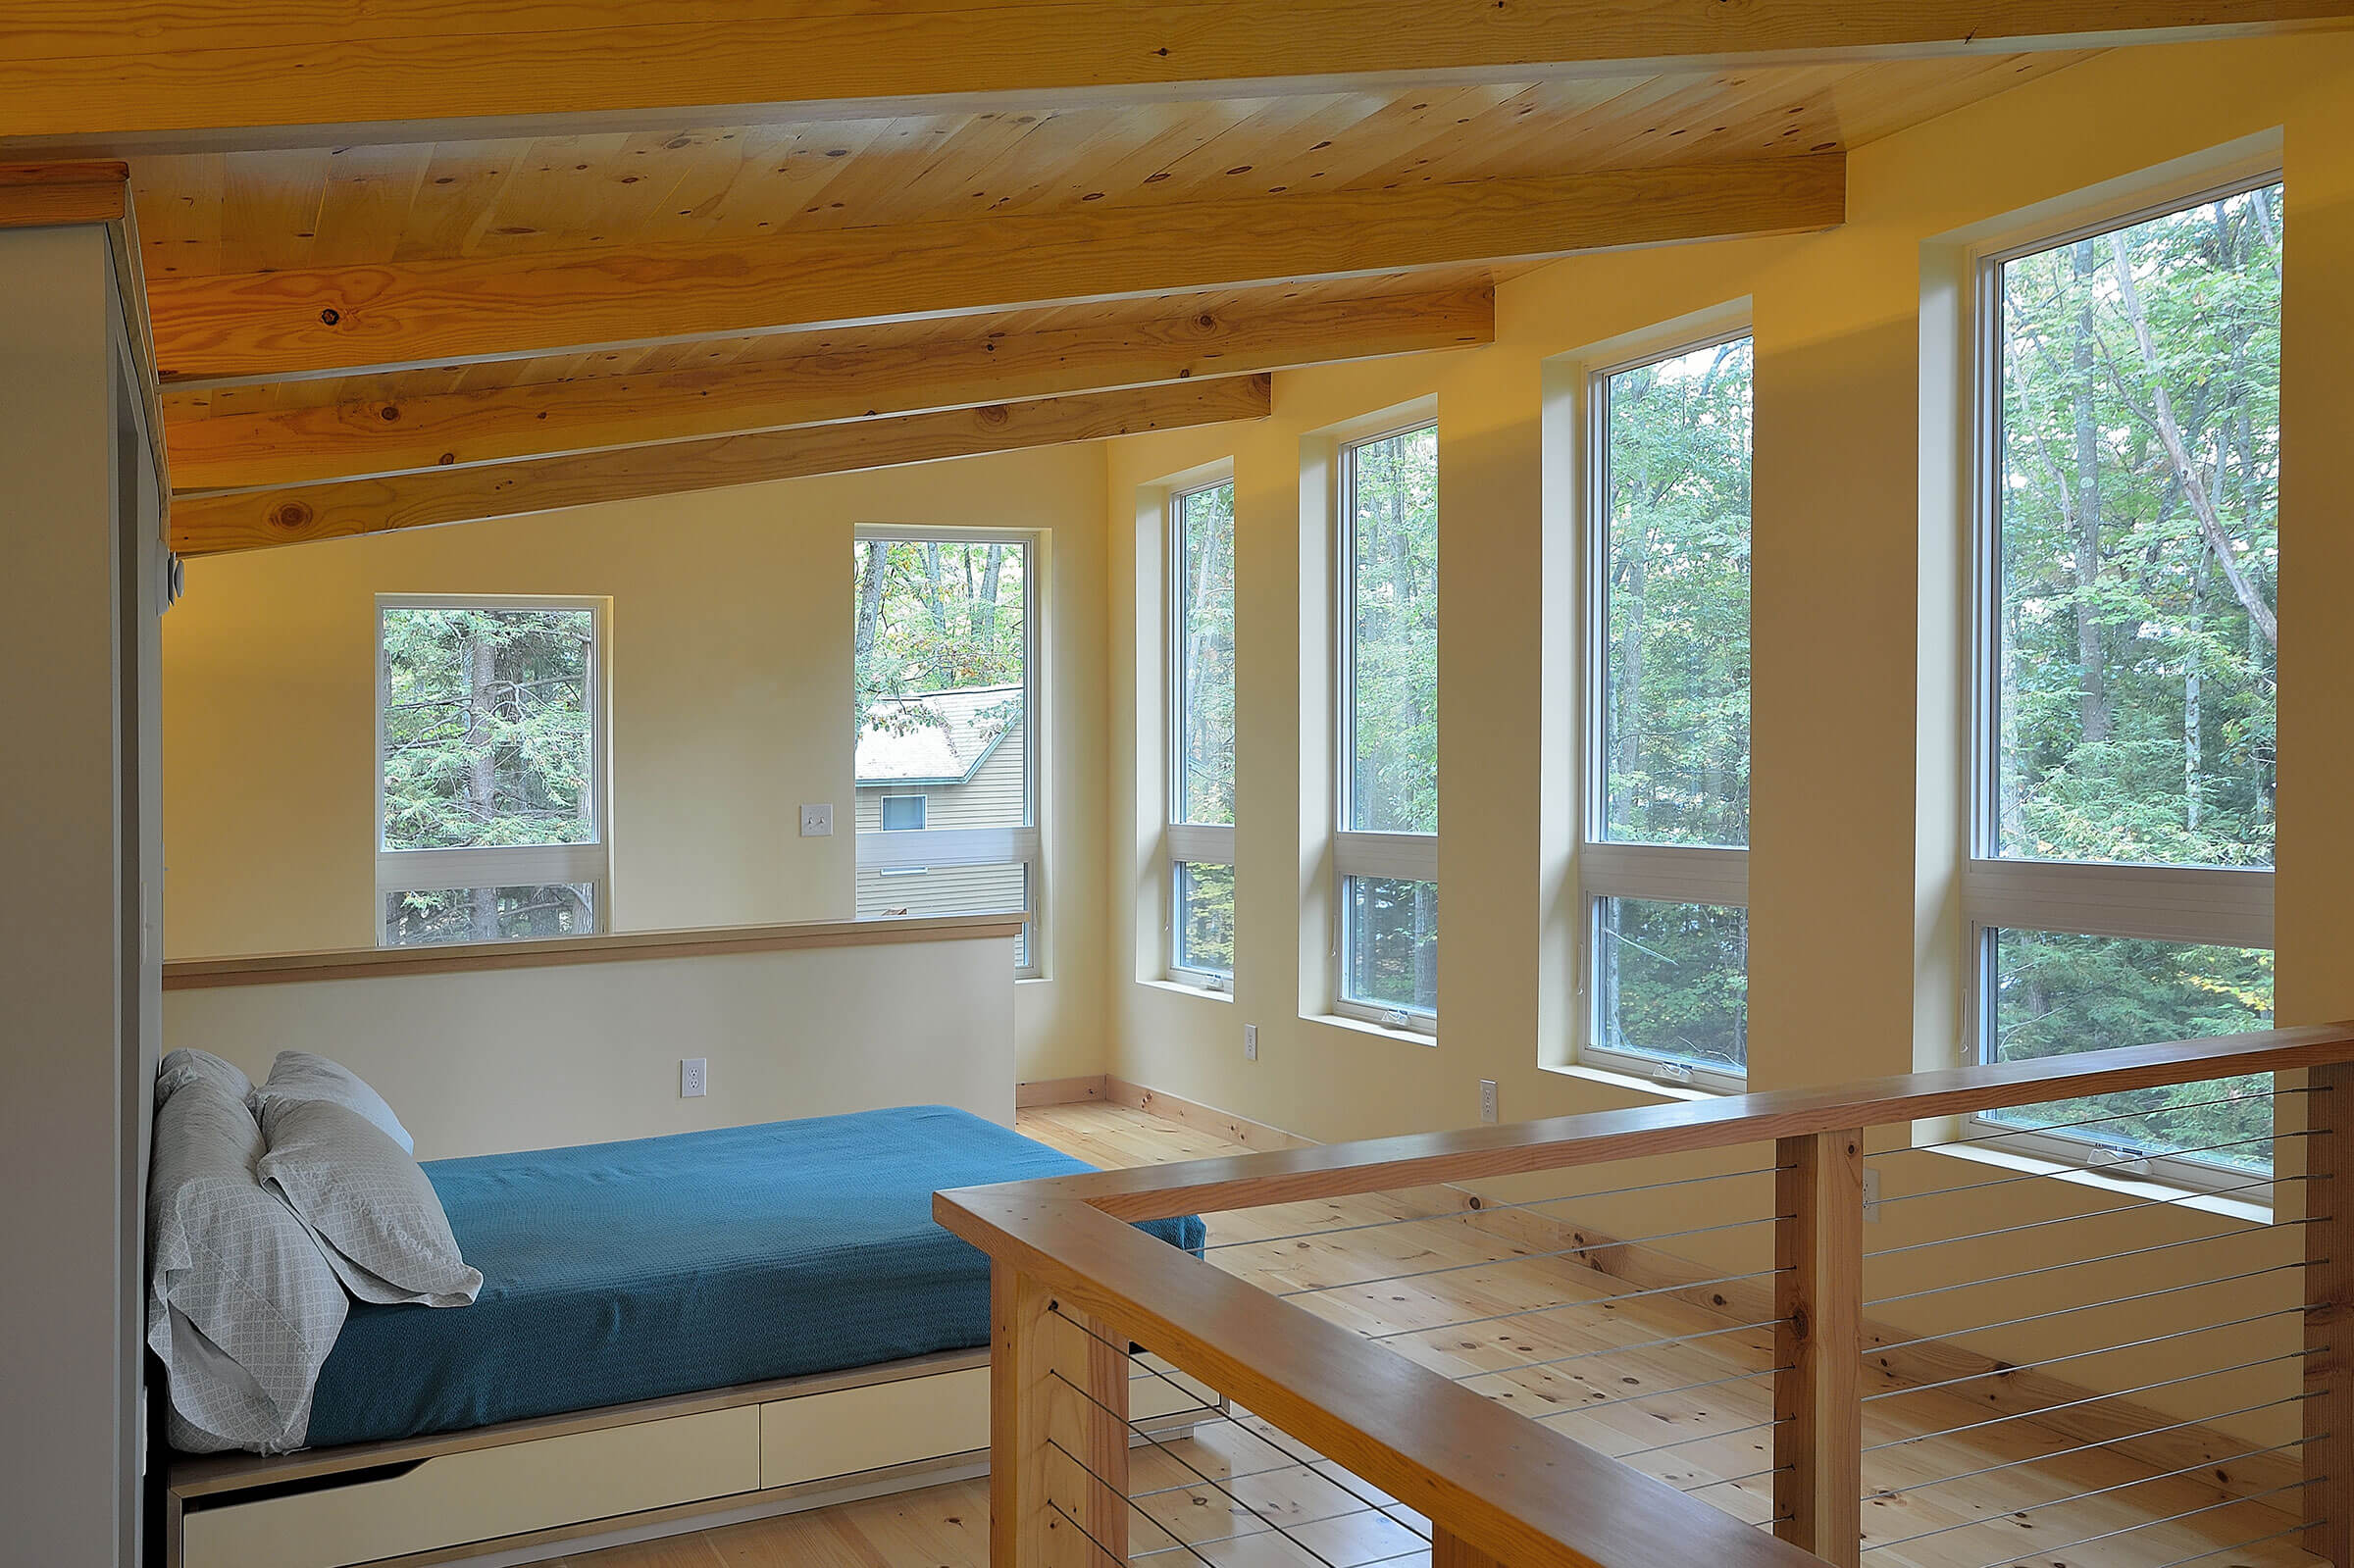 Bedroom In Contemporary Cabin With Marvin Essential Windows